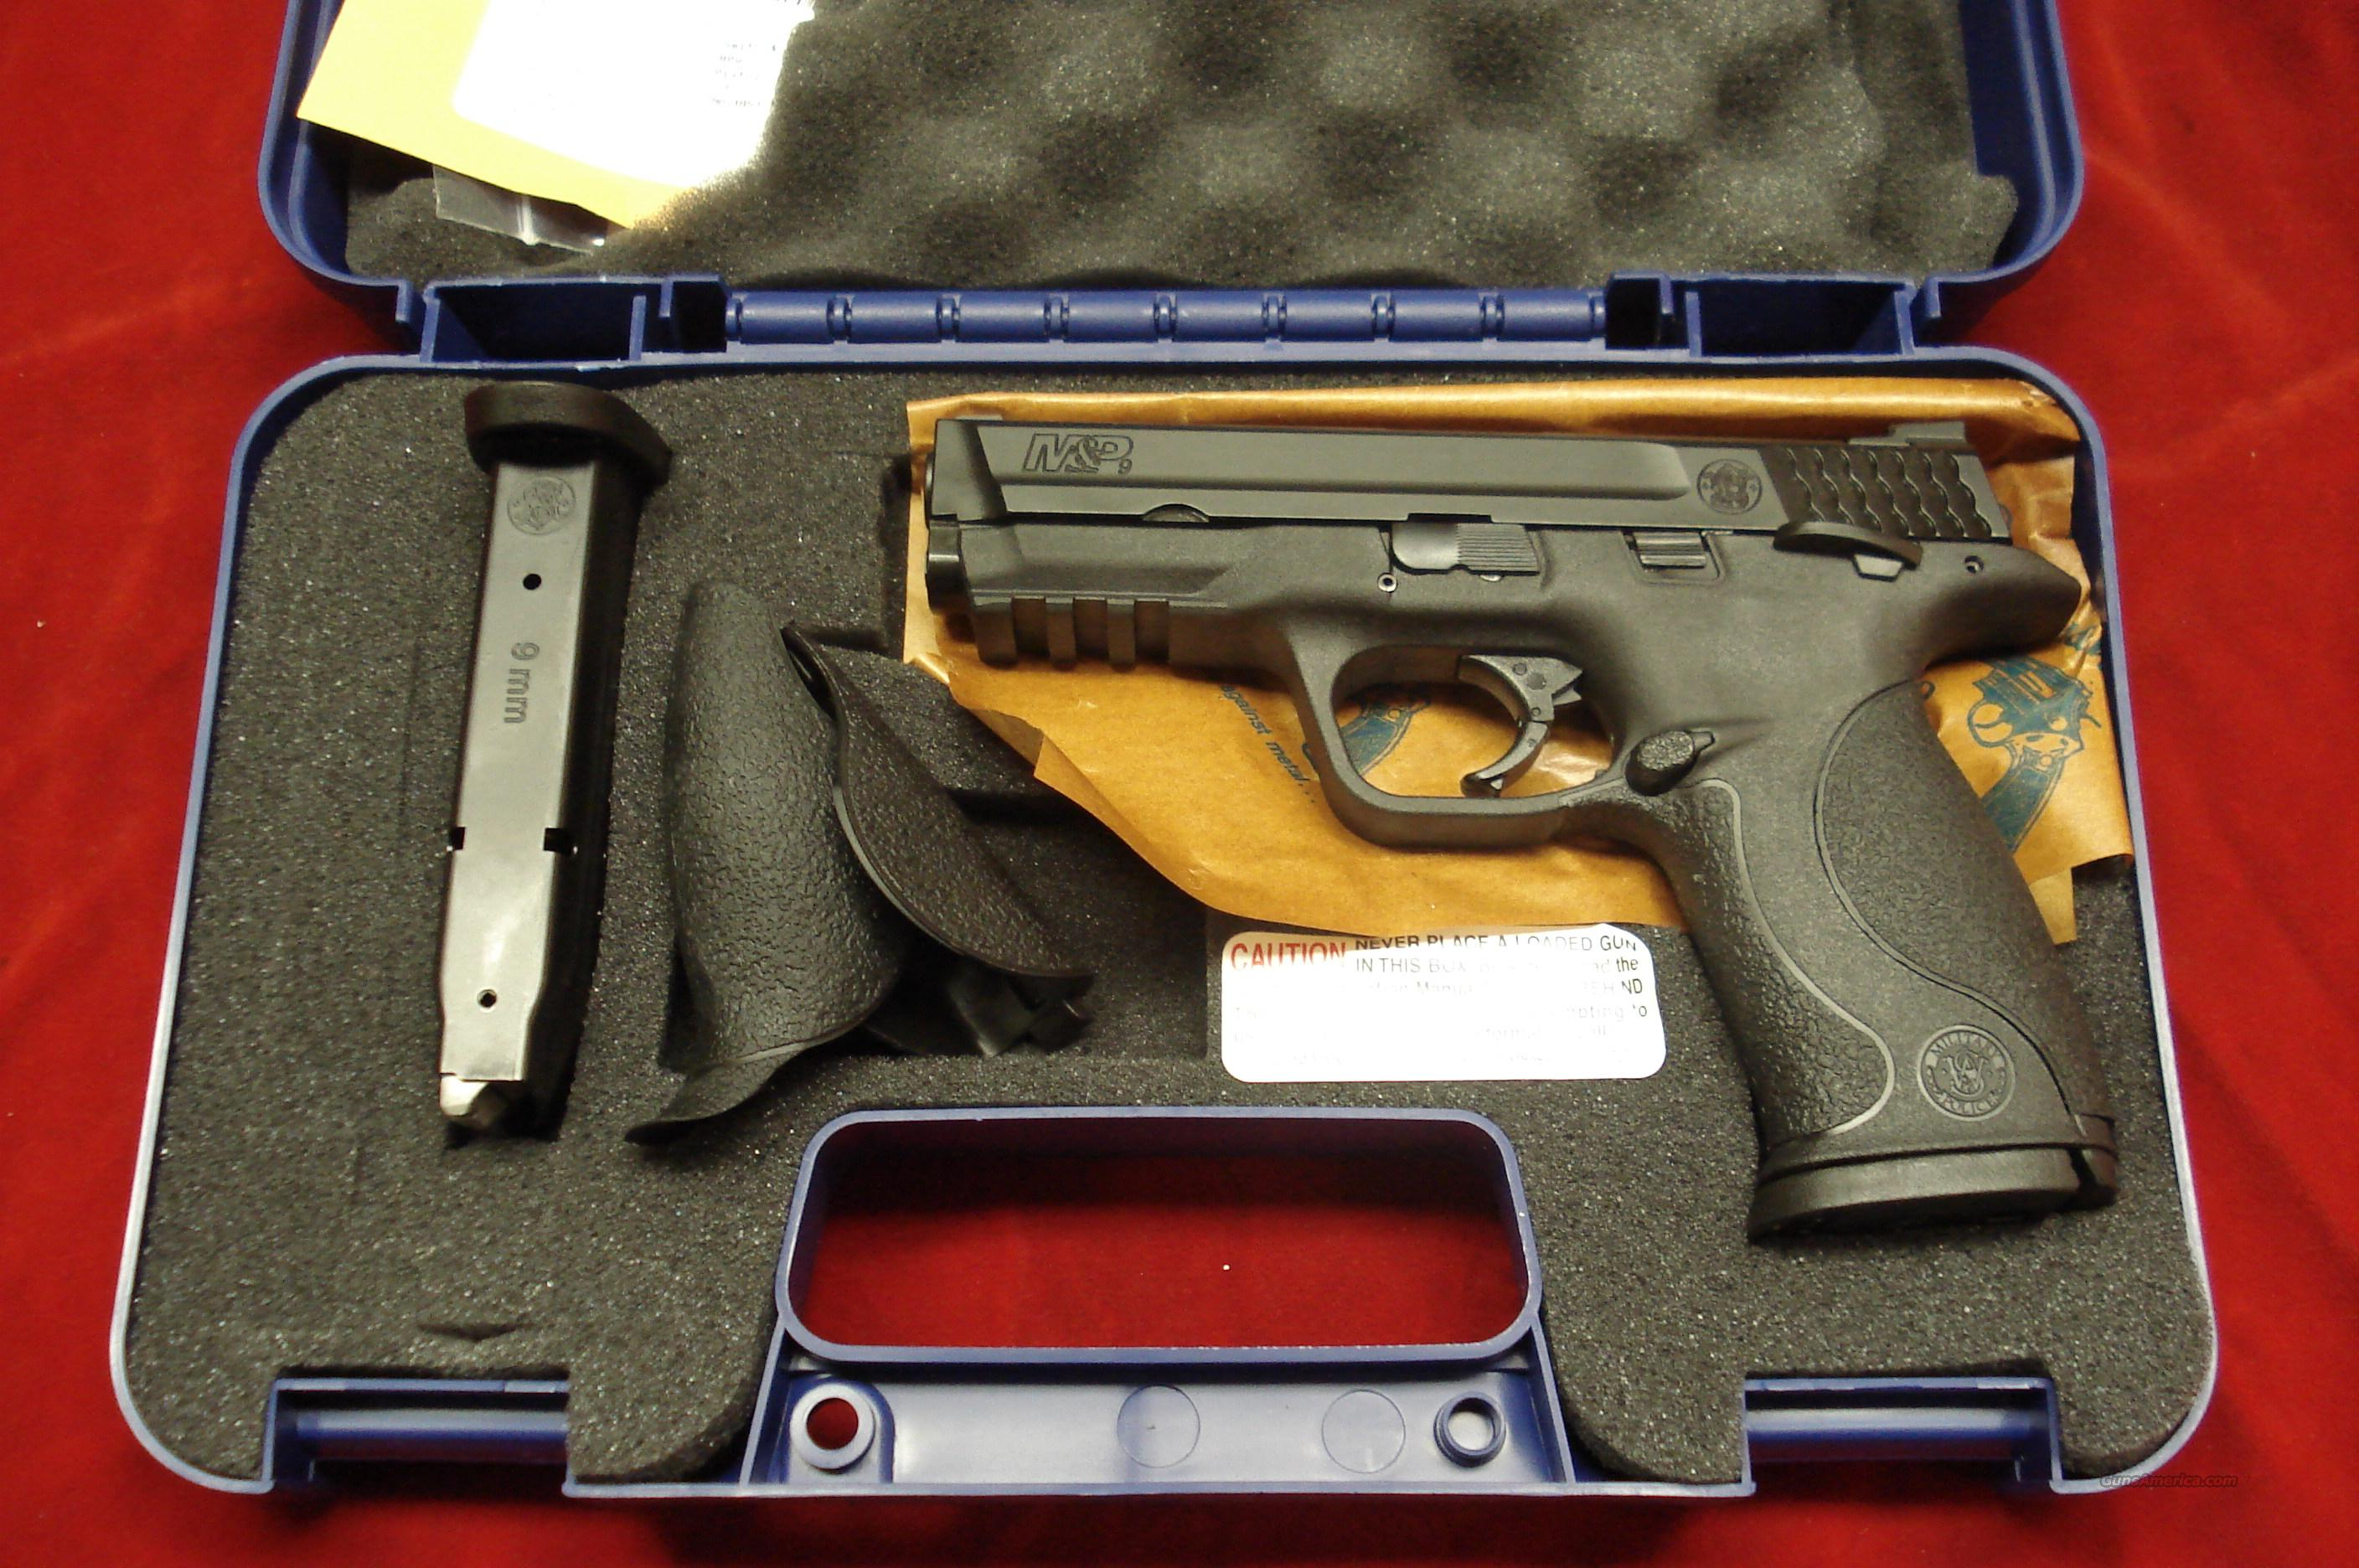 SMITH AND WESSON M&P 9MM HIGH/CAP W/THUMB SAFETY NEW   Guns > Pistols > Smith & Wesson Pistols - Autos > Polymer Frame